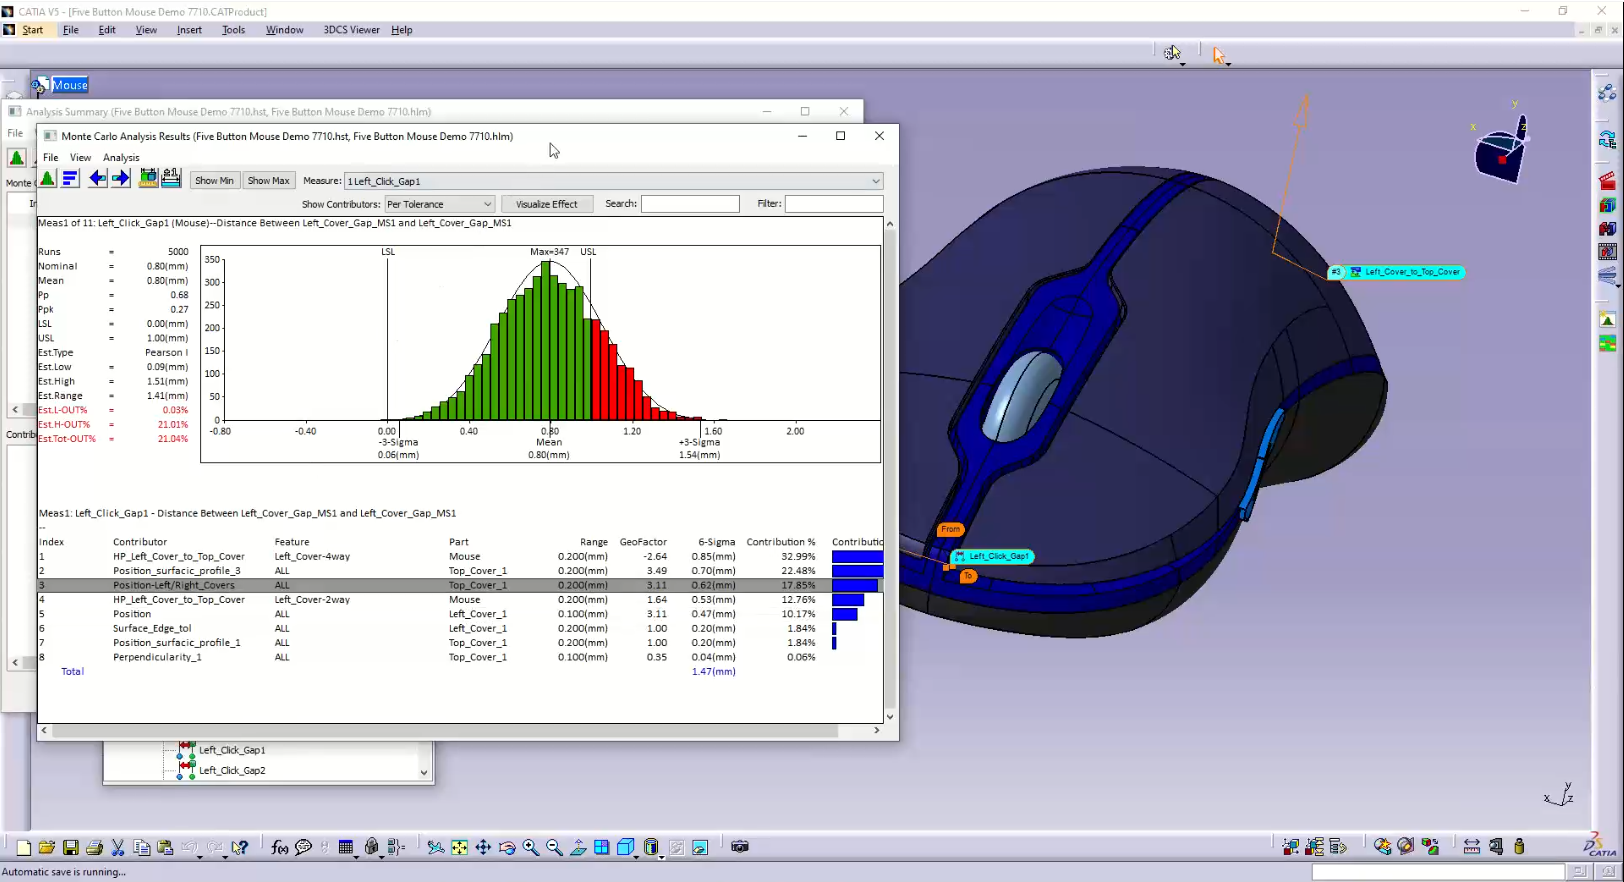 Mouse Model in 3DCS Viewer